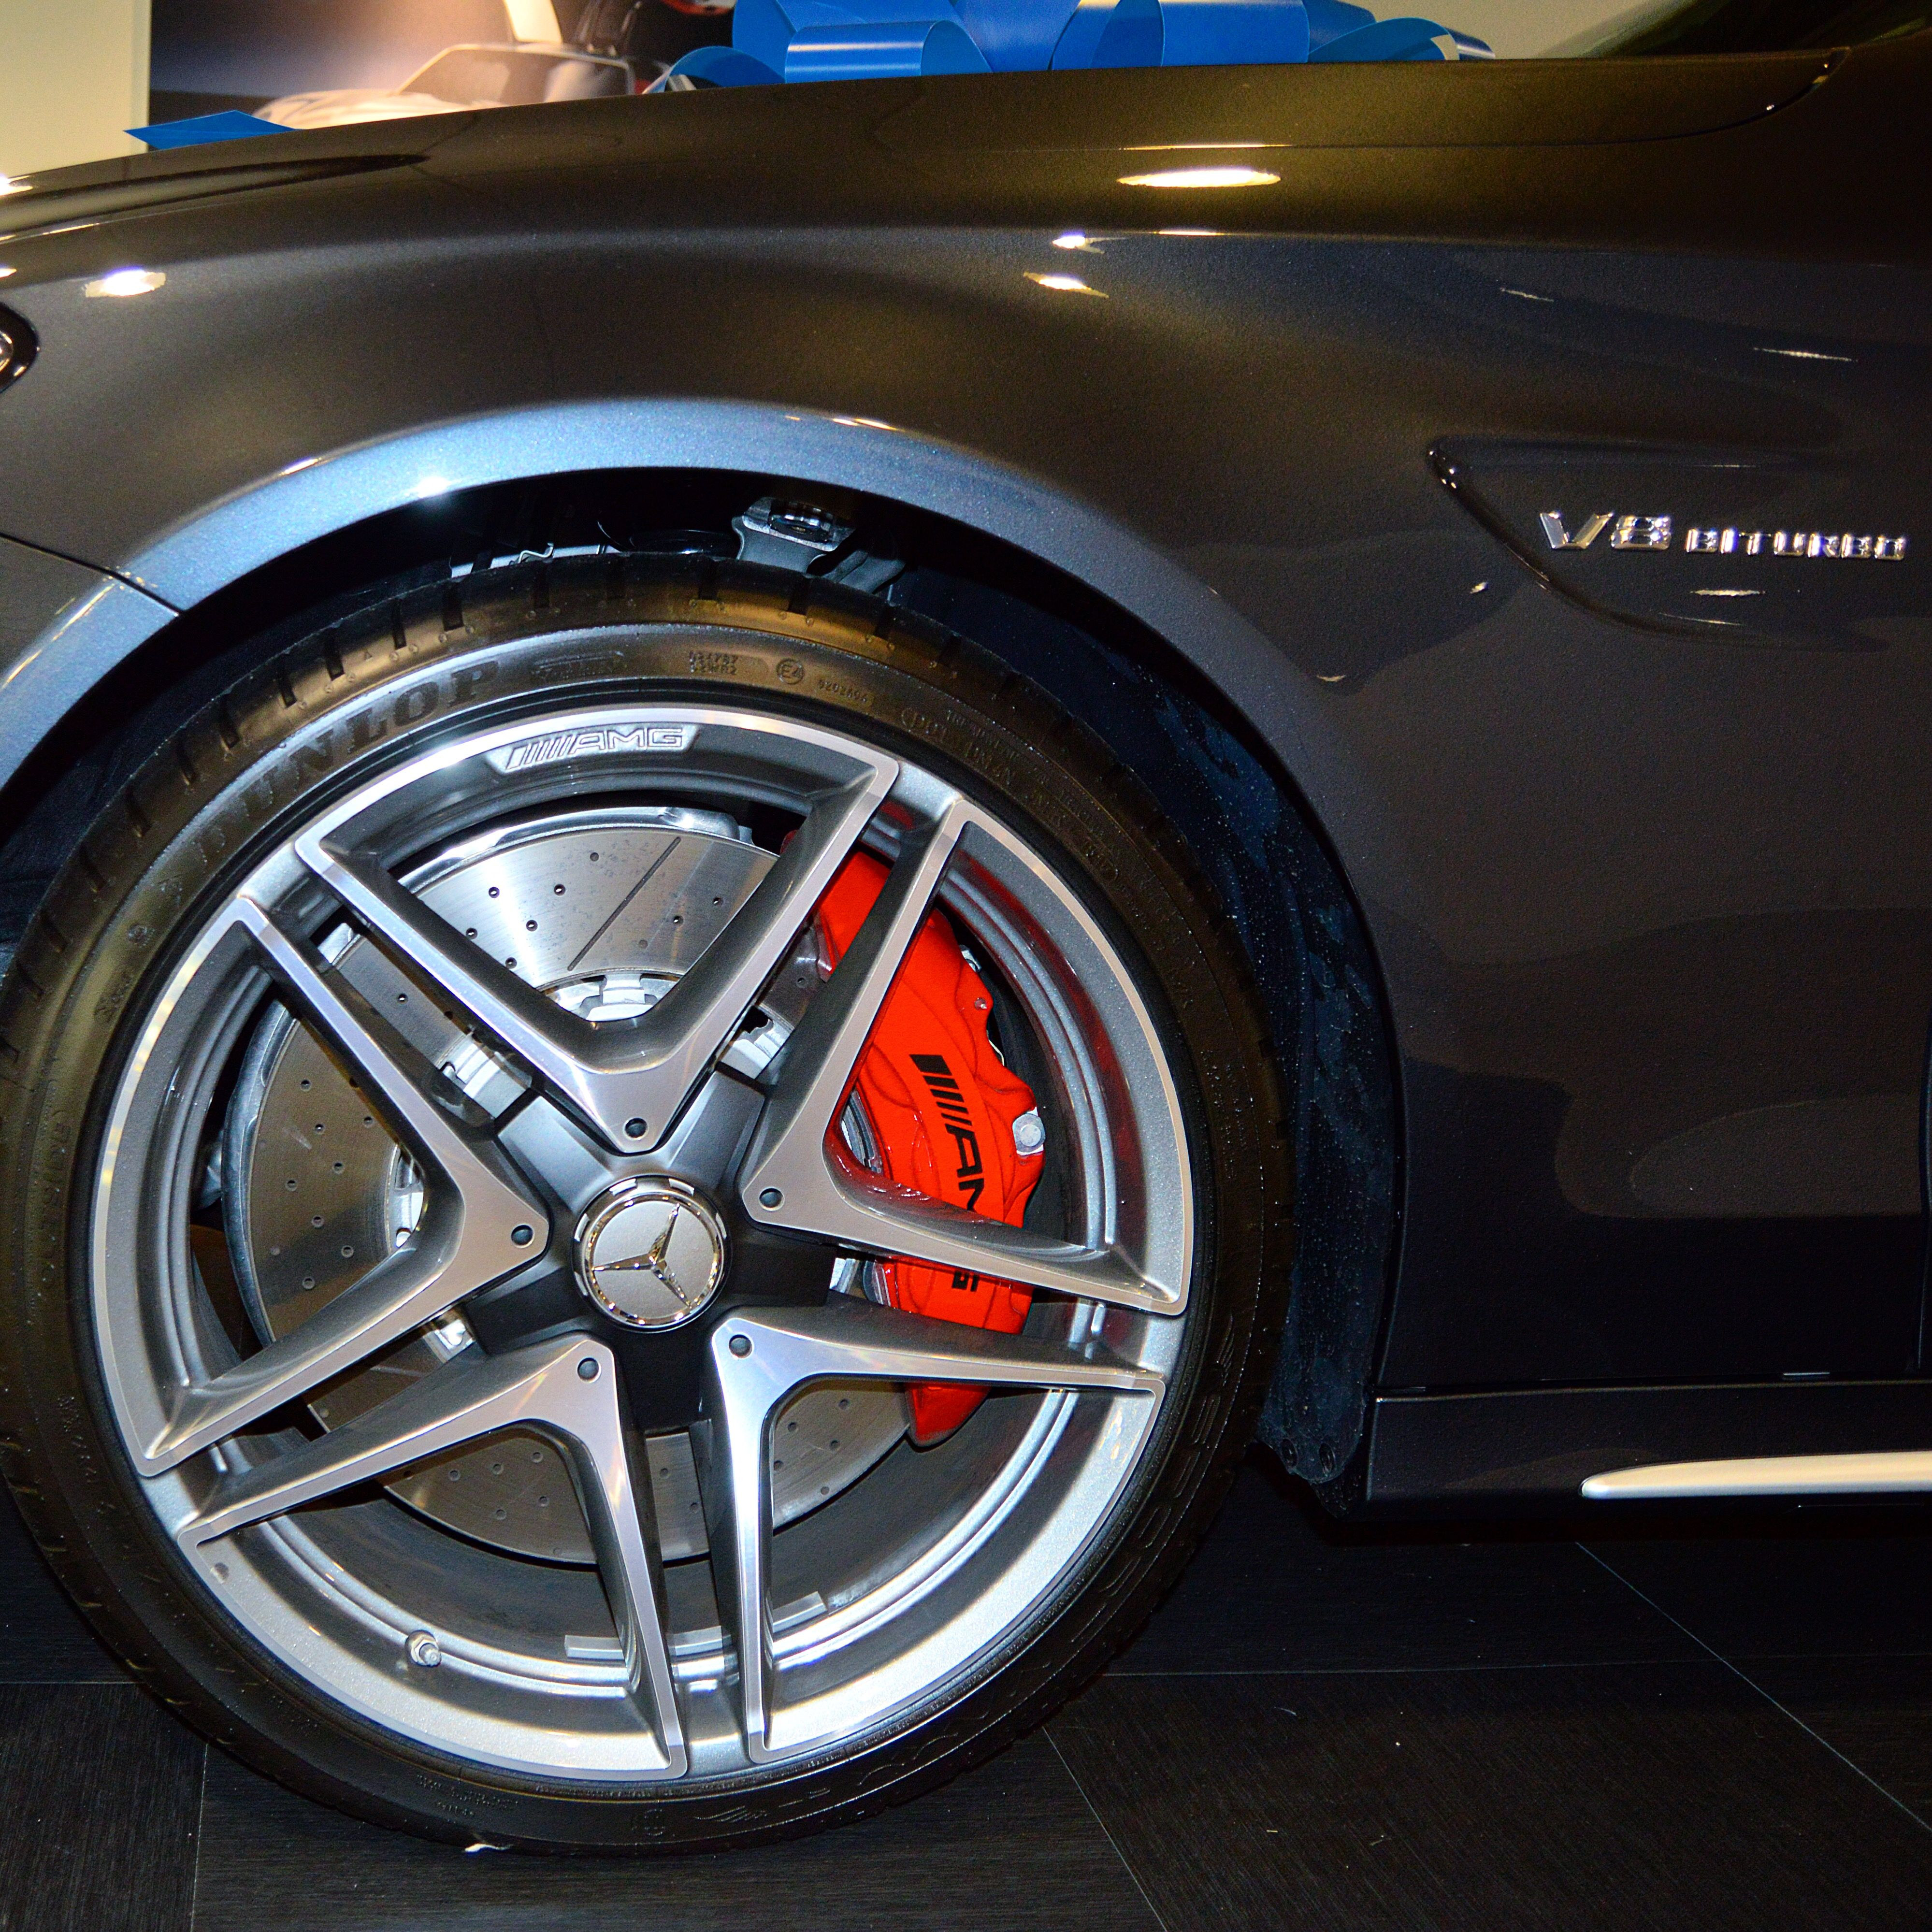 Red Brake Calipers To Match The Black Red Pepper Interior Of This